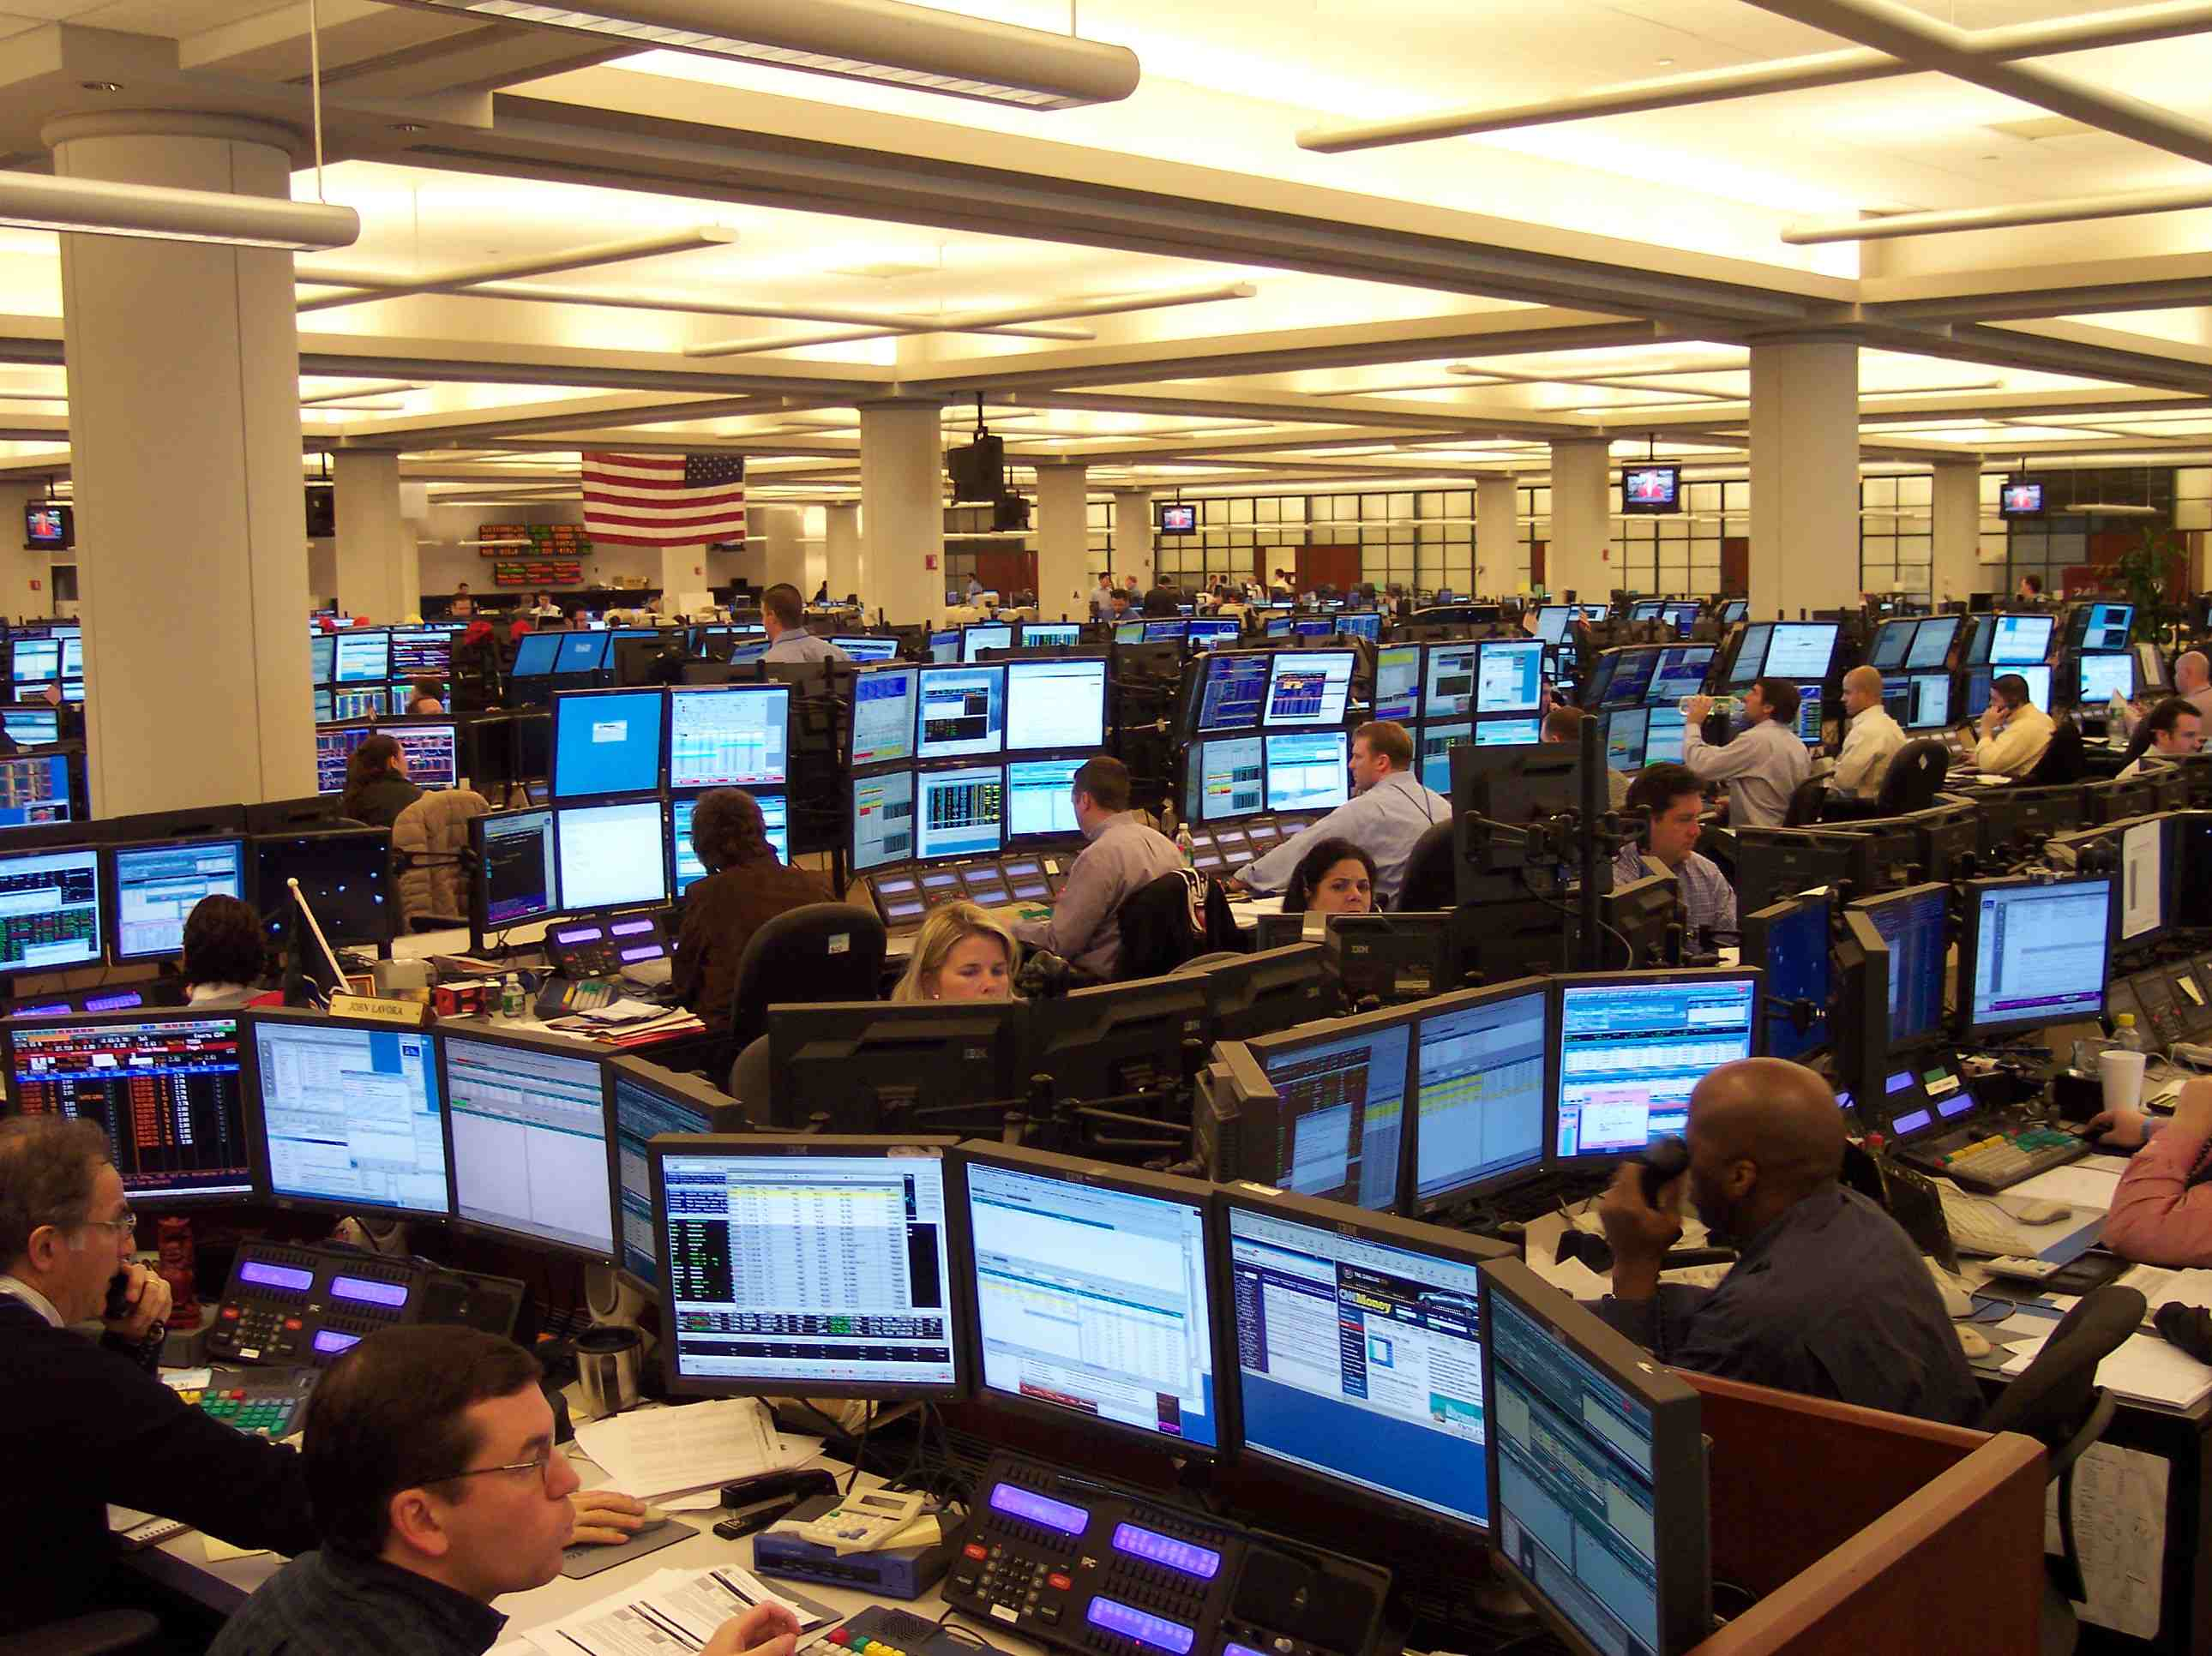 File:A1 Houston Office Oil Traders on Monday.jpg - Wikimedia Commons